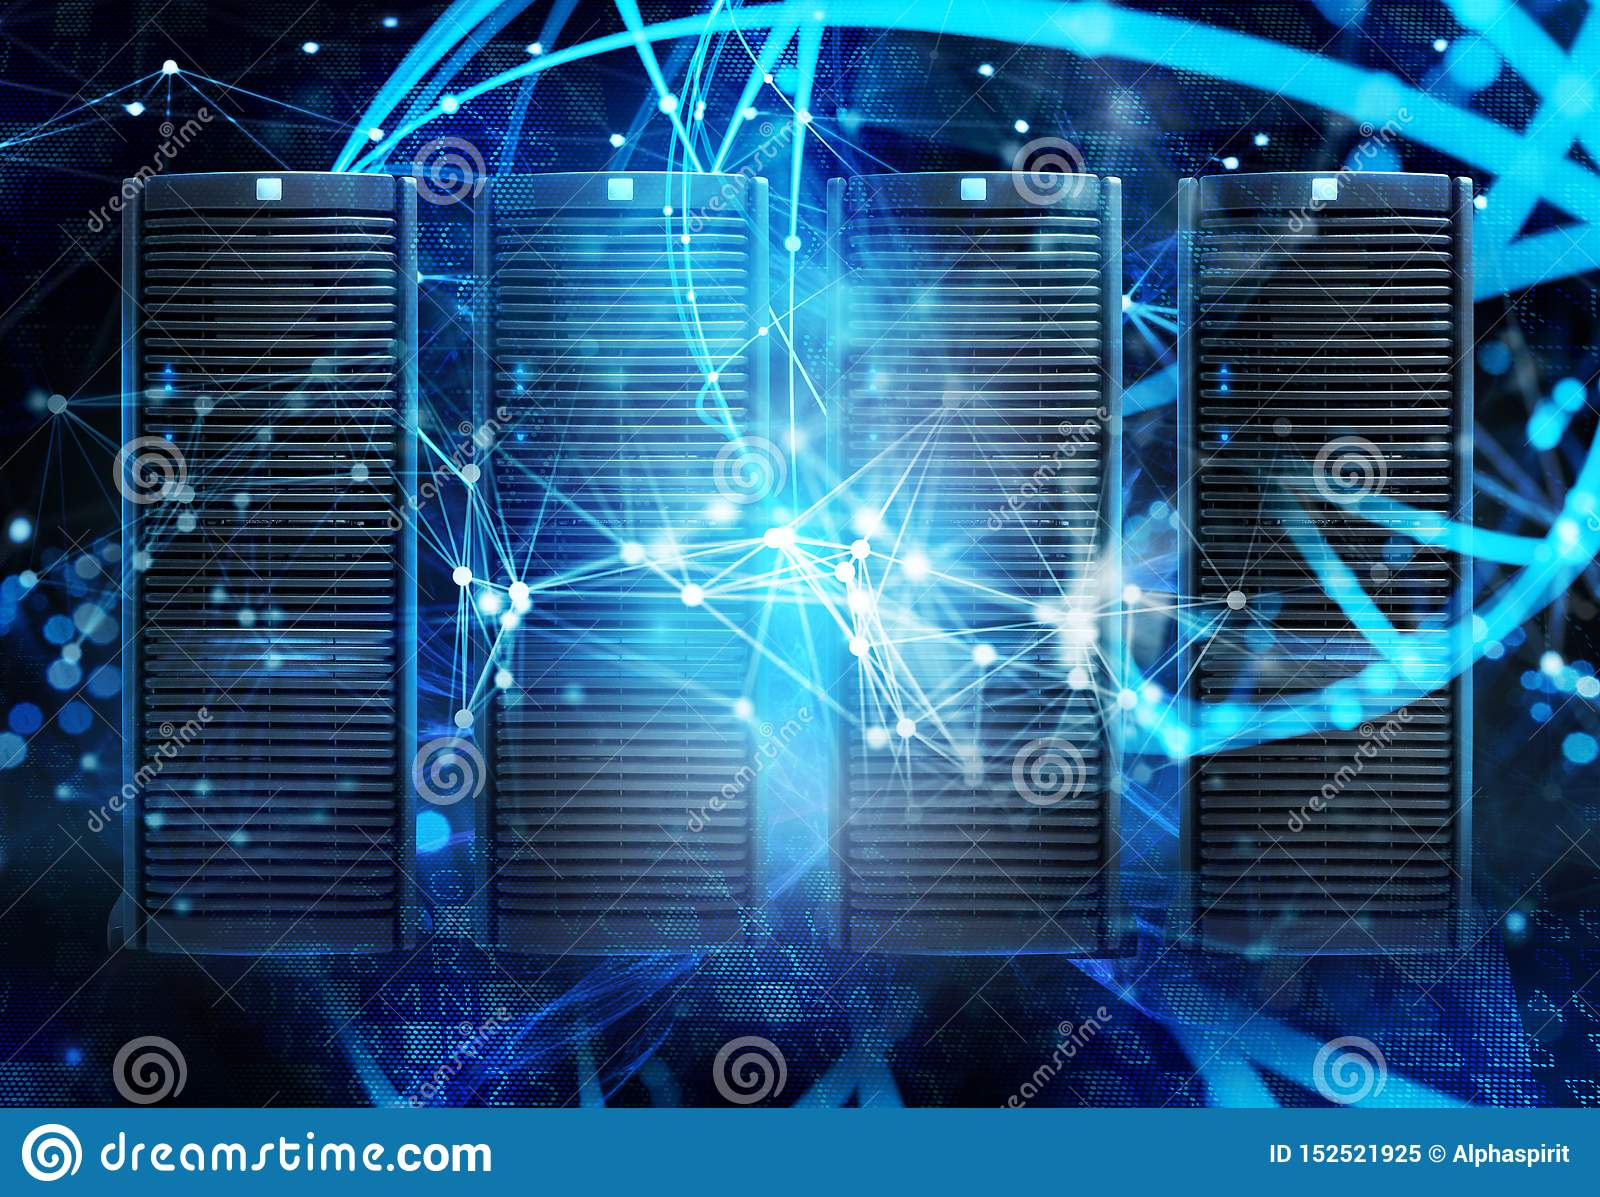 Concept of a data center room with database server and network effects.